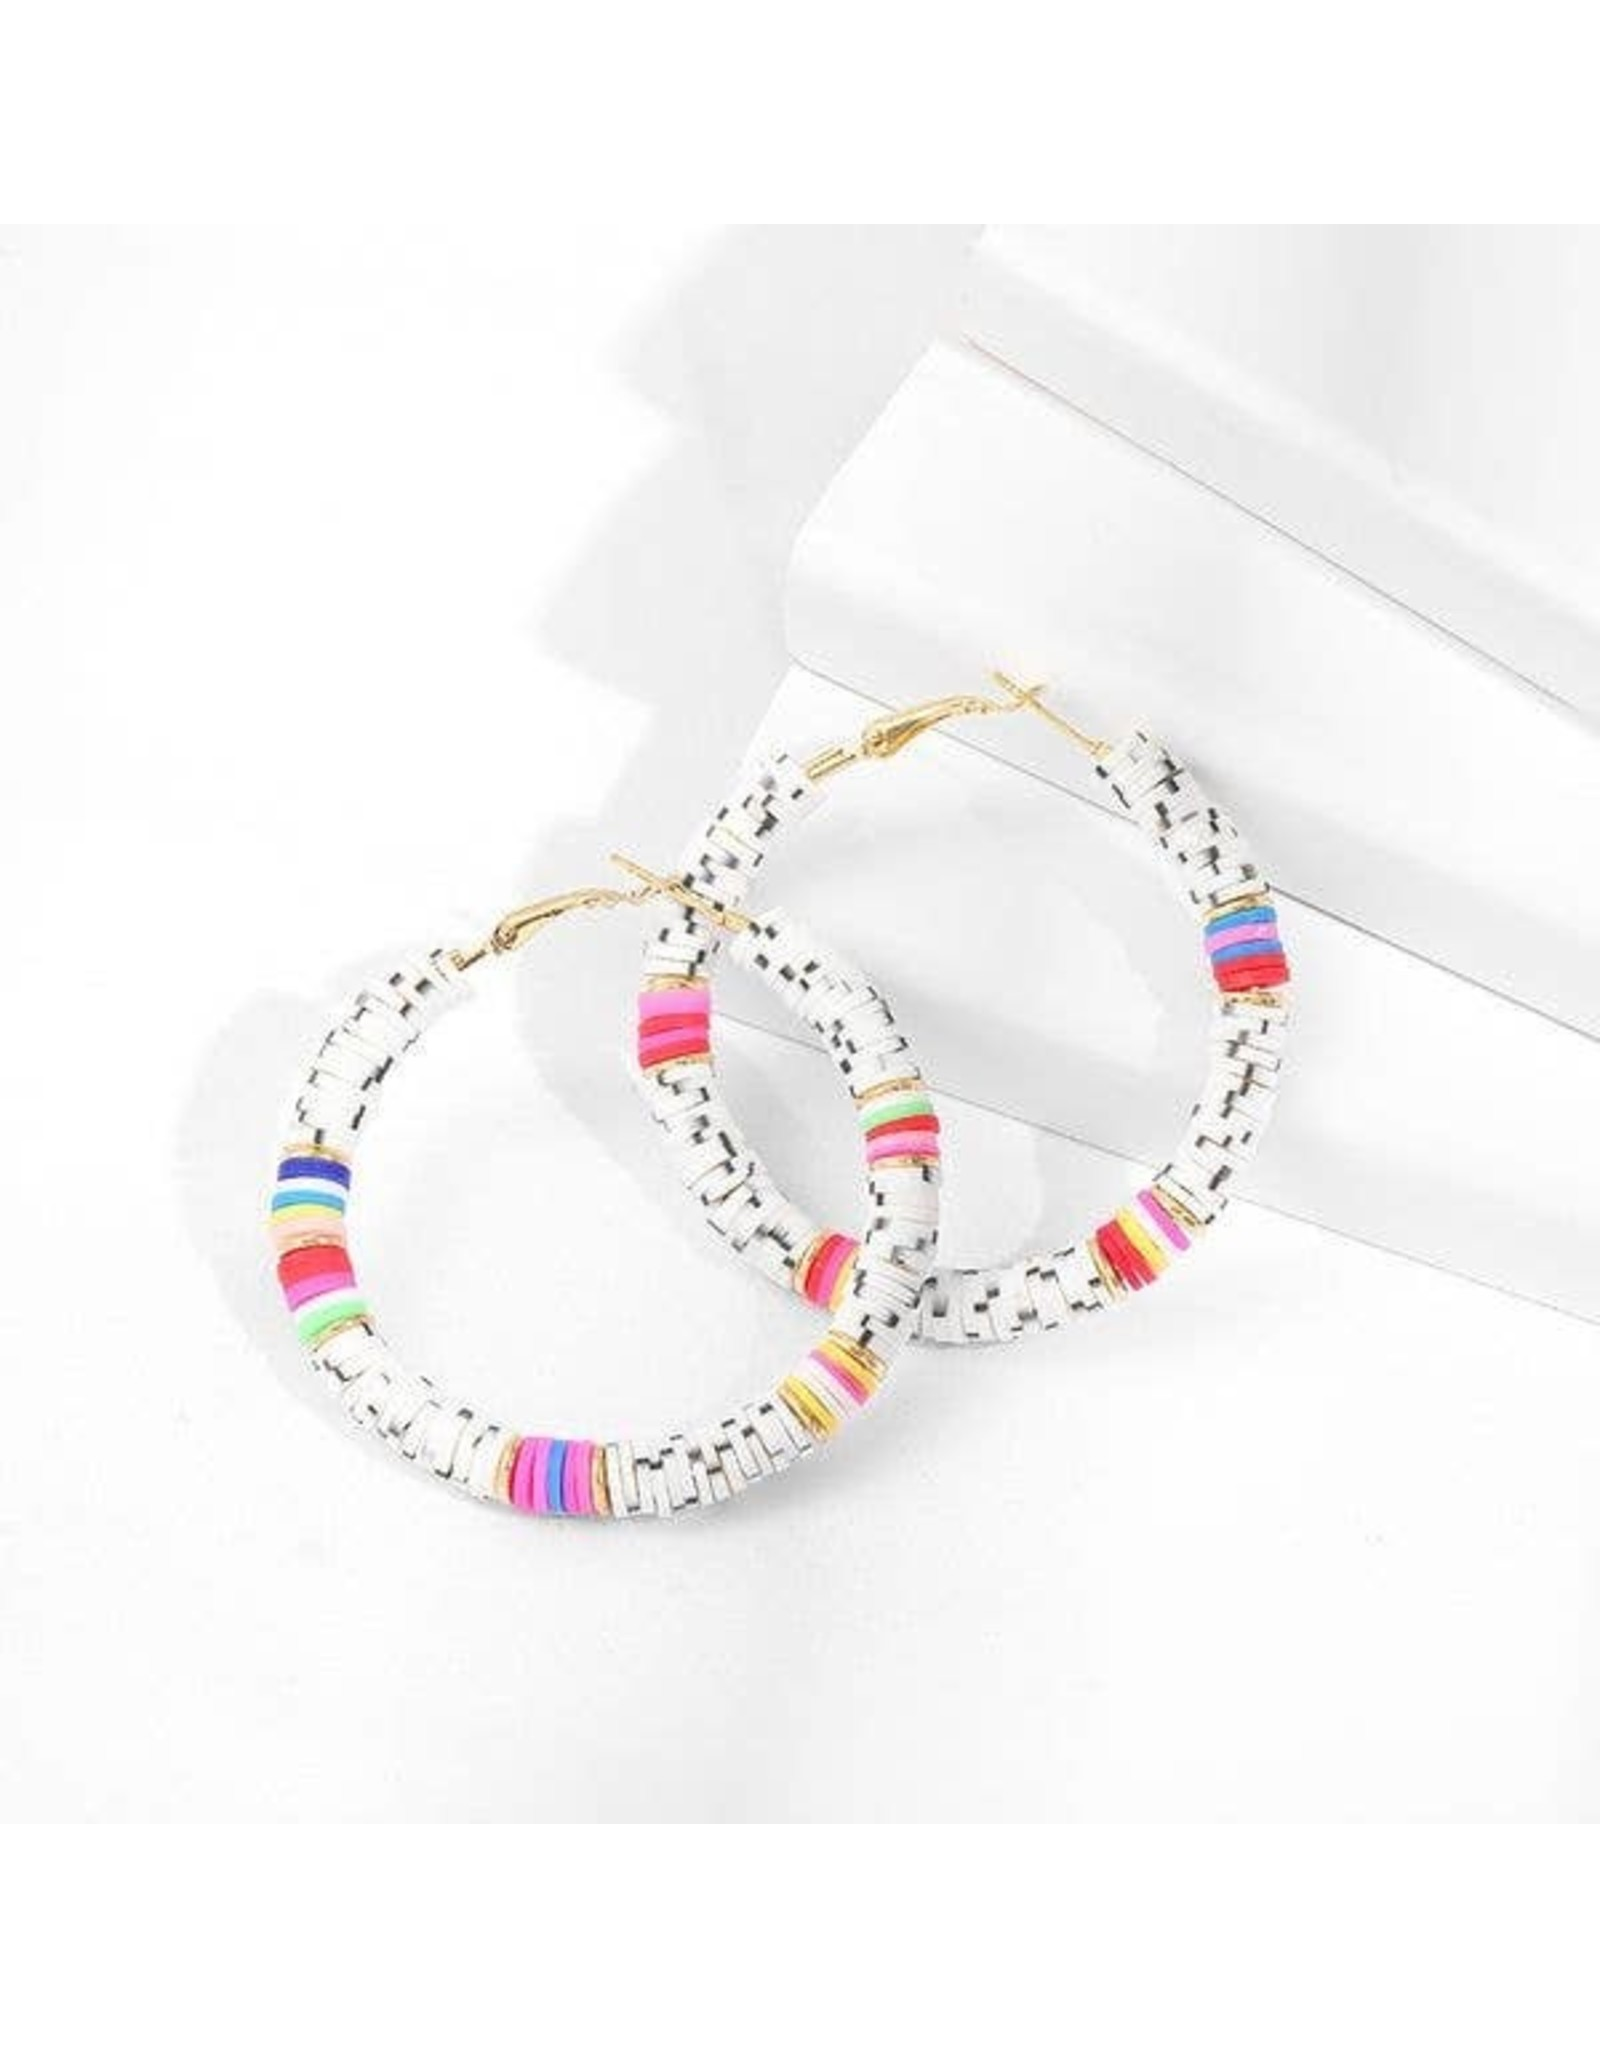 KOKO & LOLA WHITE MARBLE & RAINBOW CLAY RESIN HOOP EARRING